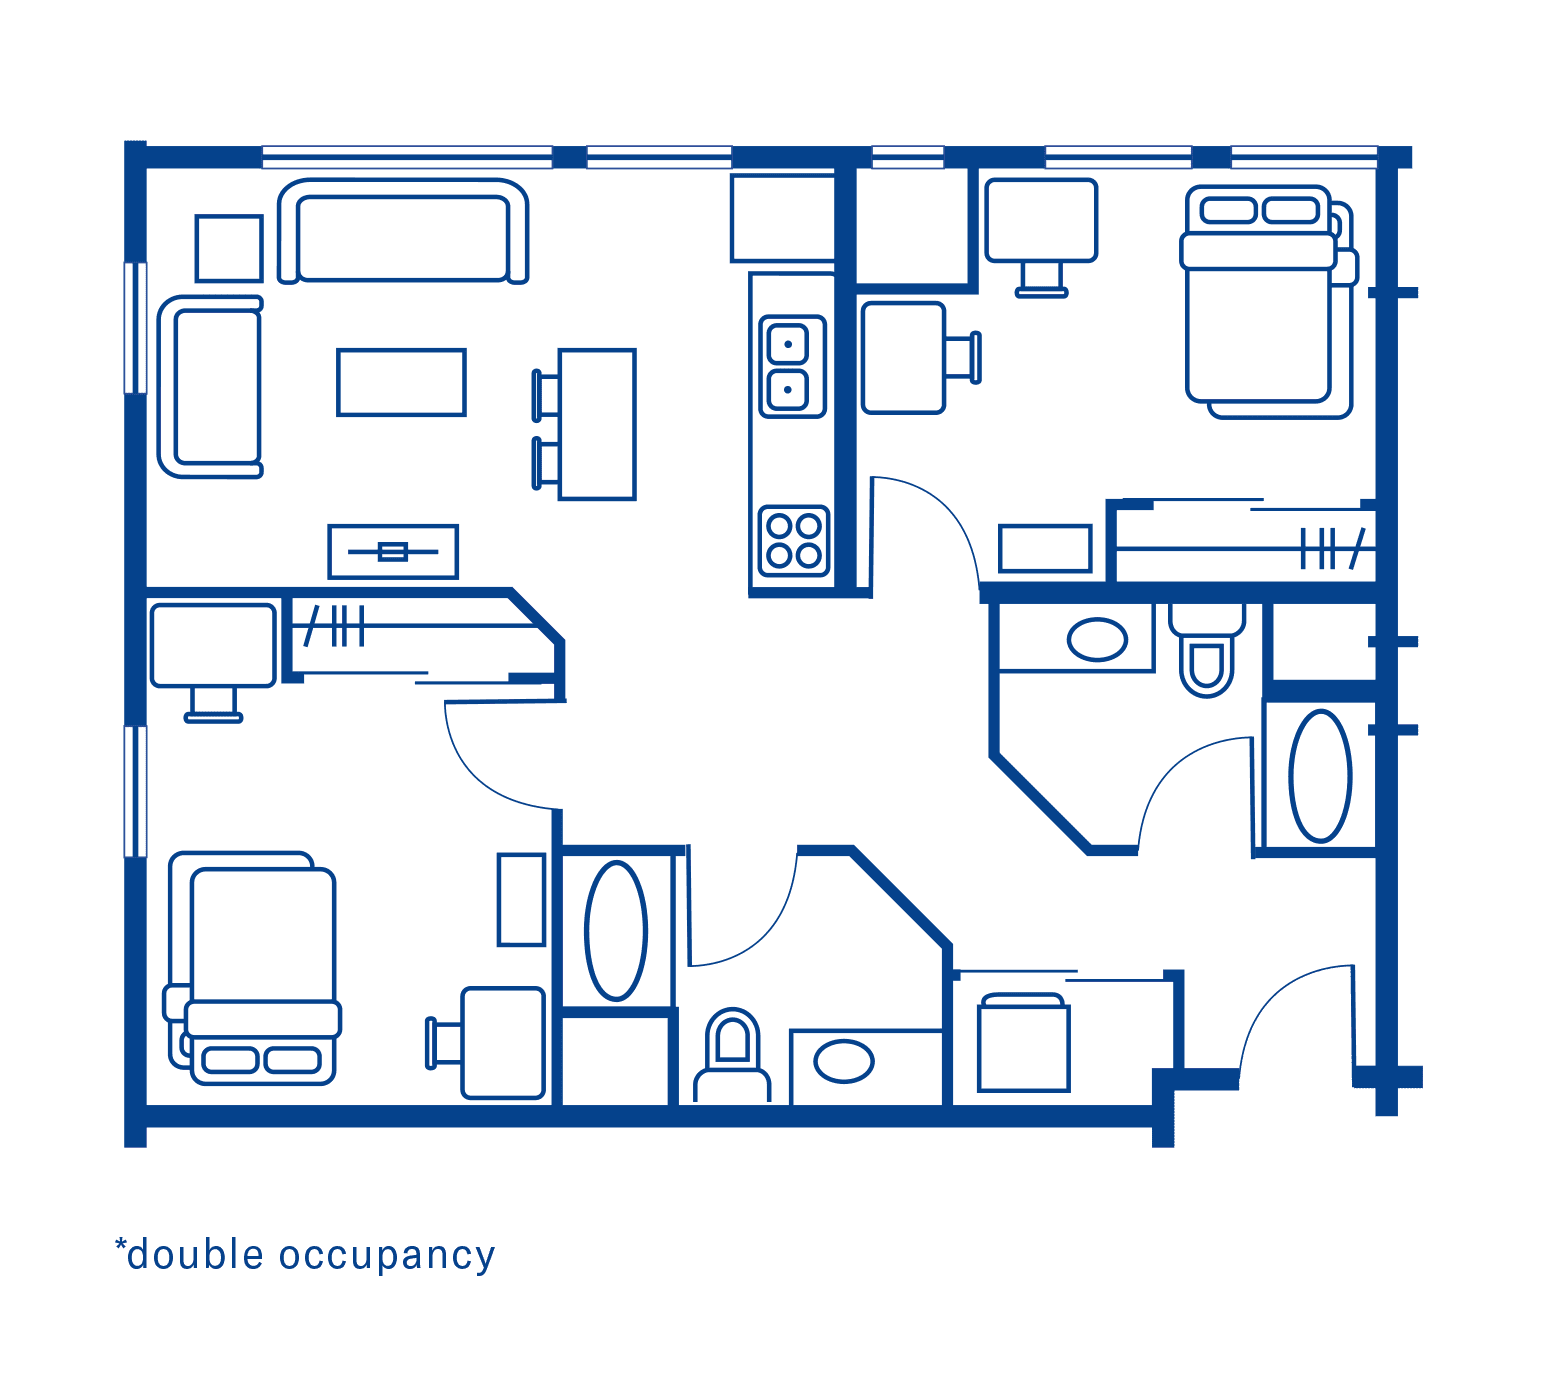 2 Bedroom Floorplan 6